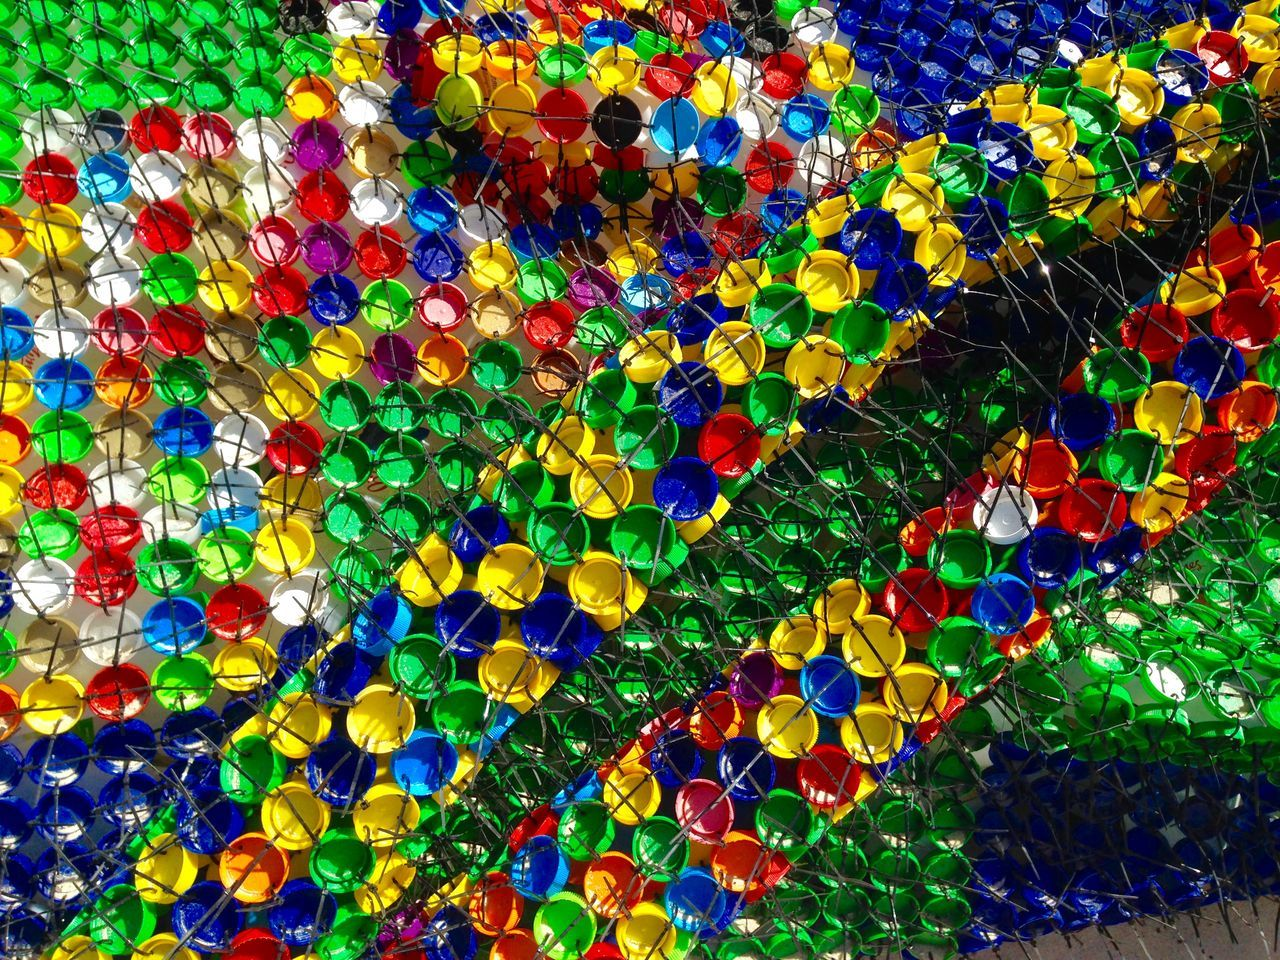 Upcycling: Sculpture Abstract Plastic Plastic Lids Milk Tops Upcycling Recycling Western Australia Sculptures By The Sea Sculpture Perth Cottesloe Beach Expressive Sculpture Sculpture Detail Recycled Art Art Abstract Primary Colors Color Circles Bottle Cap Art Milk Top Art Milk Top Sculpture Unique Sculpture